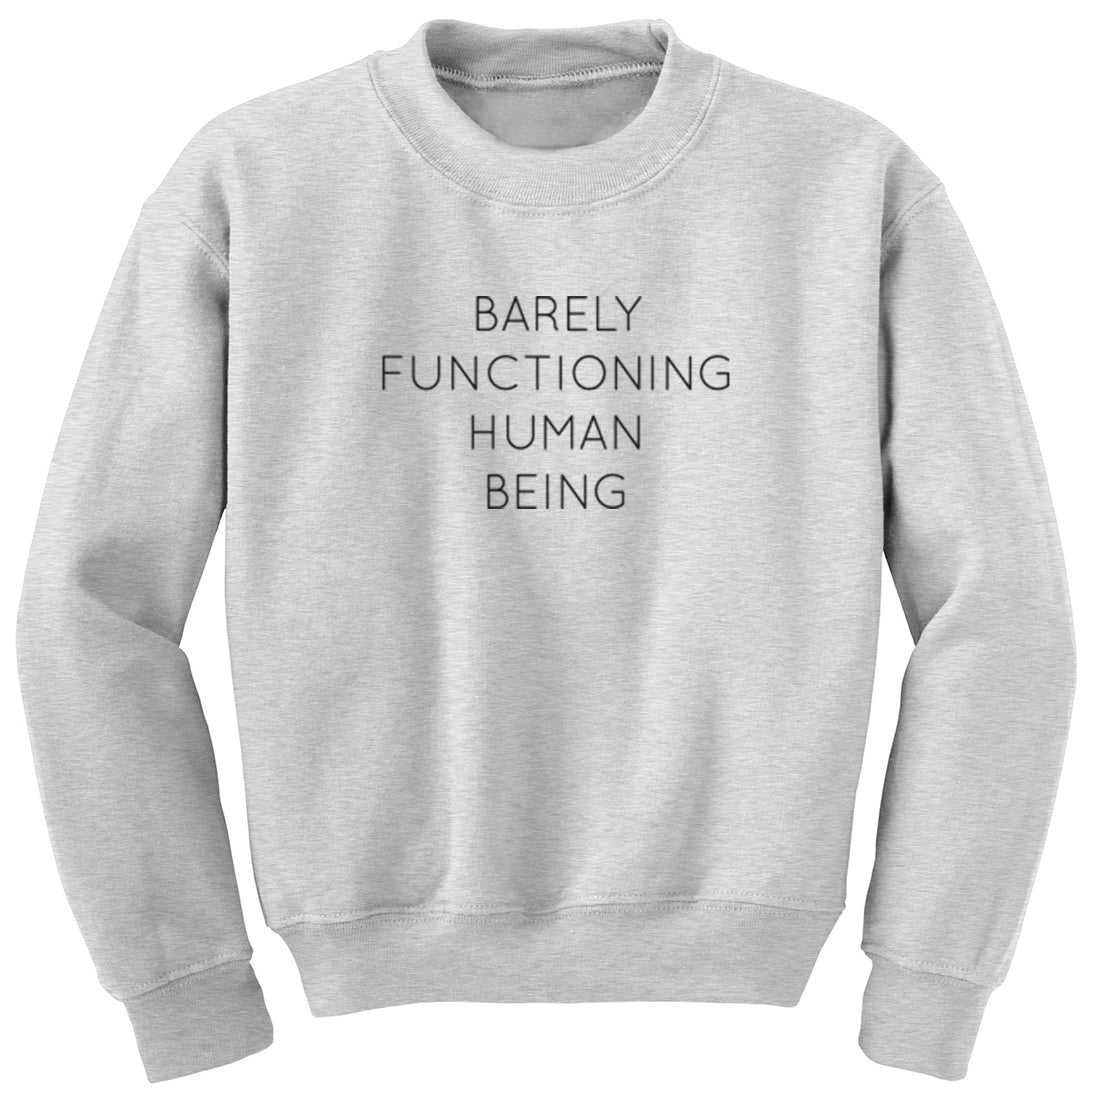 Barely Functioning Human Being Unisex Jumper K1998 - Illustrated Identity Ltd.